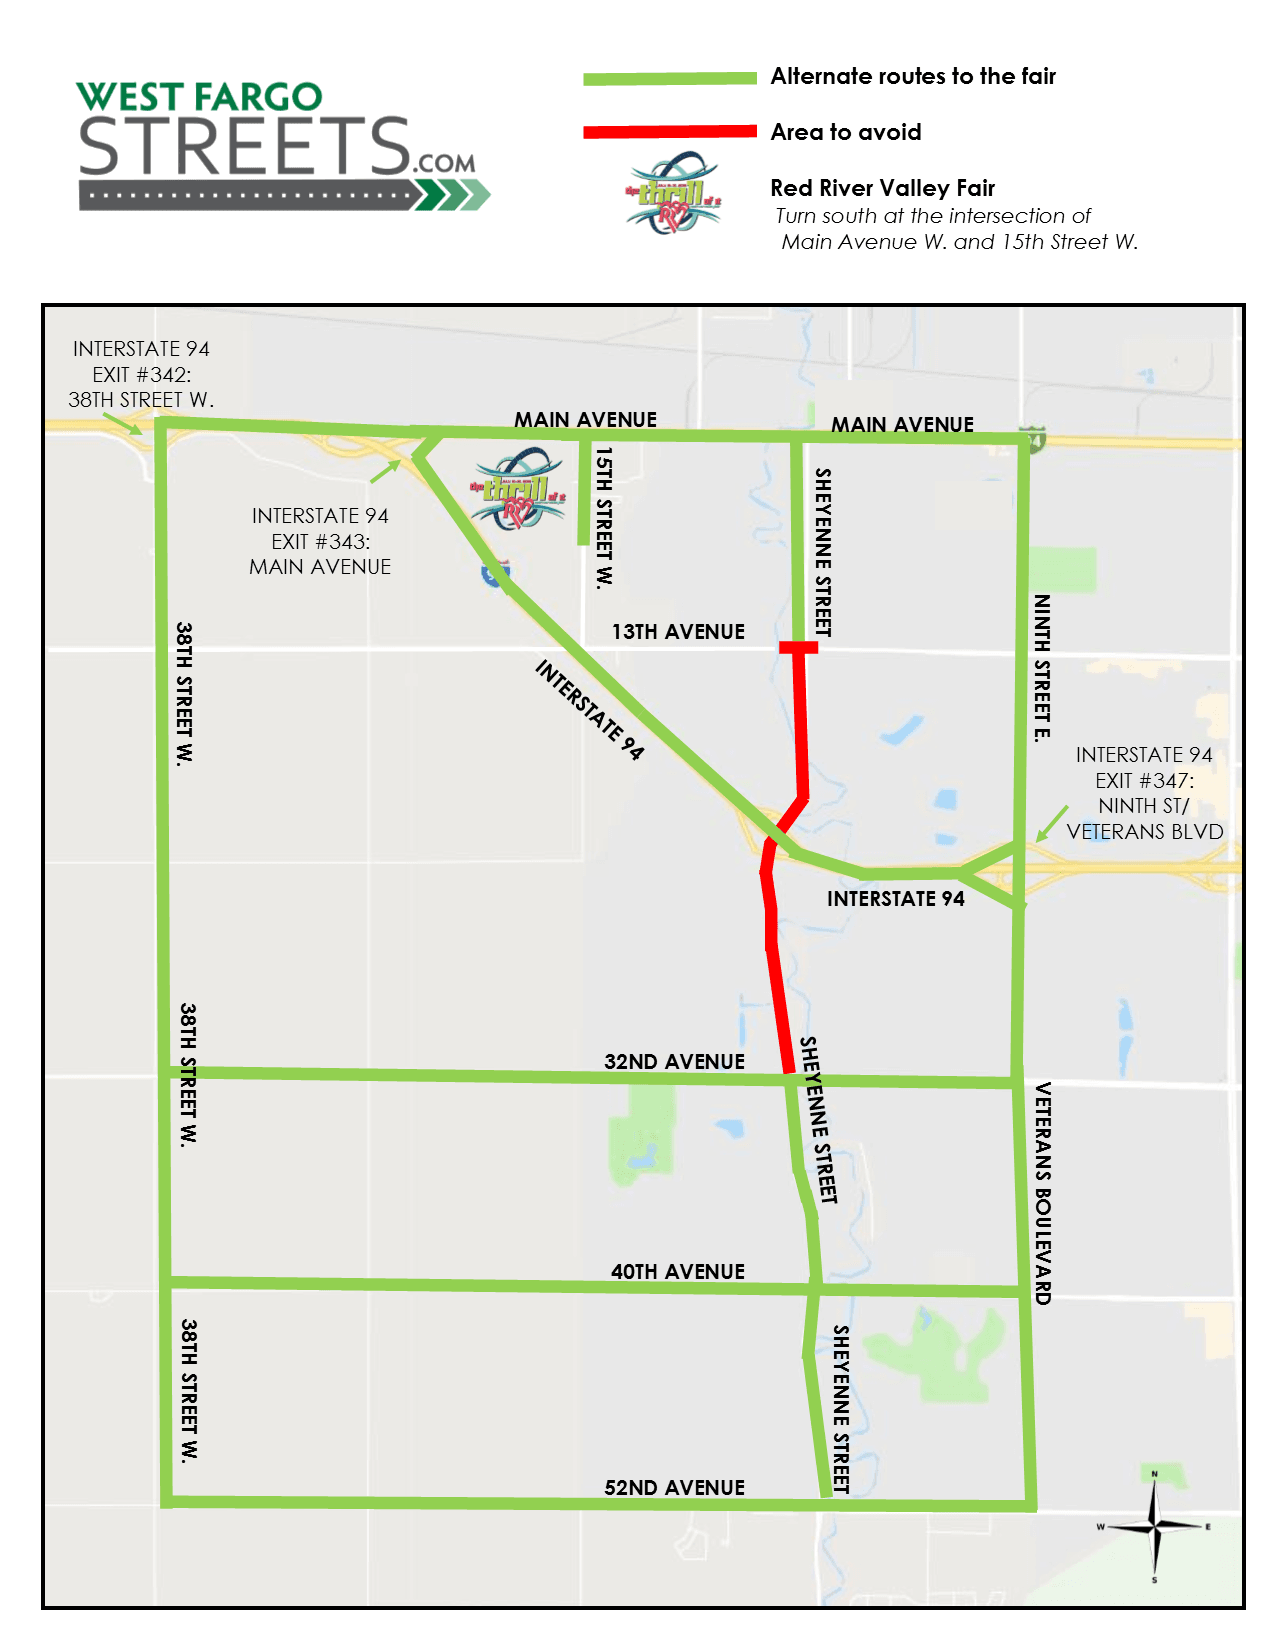 RRVF Alternate Route Map